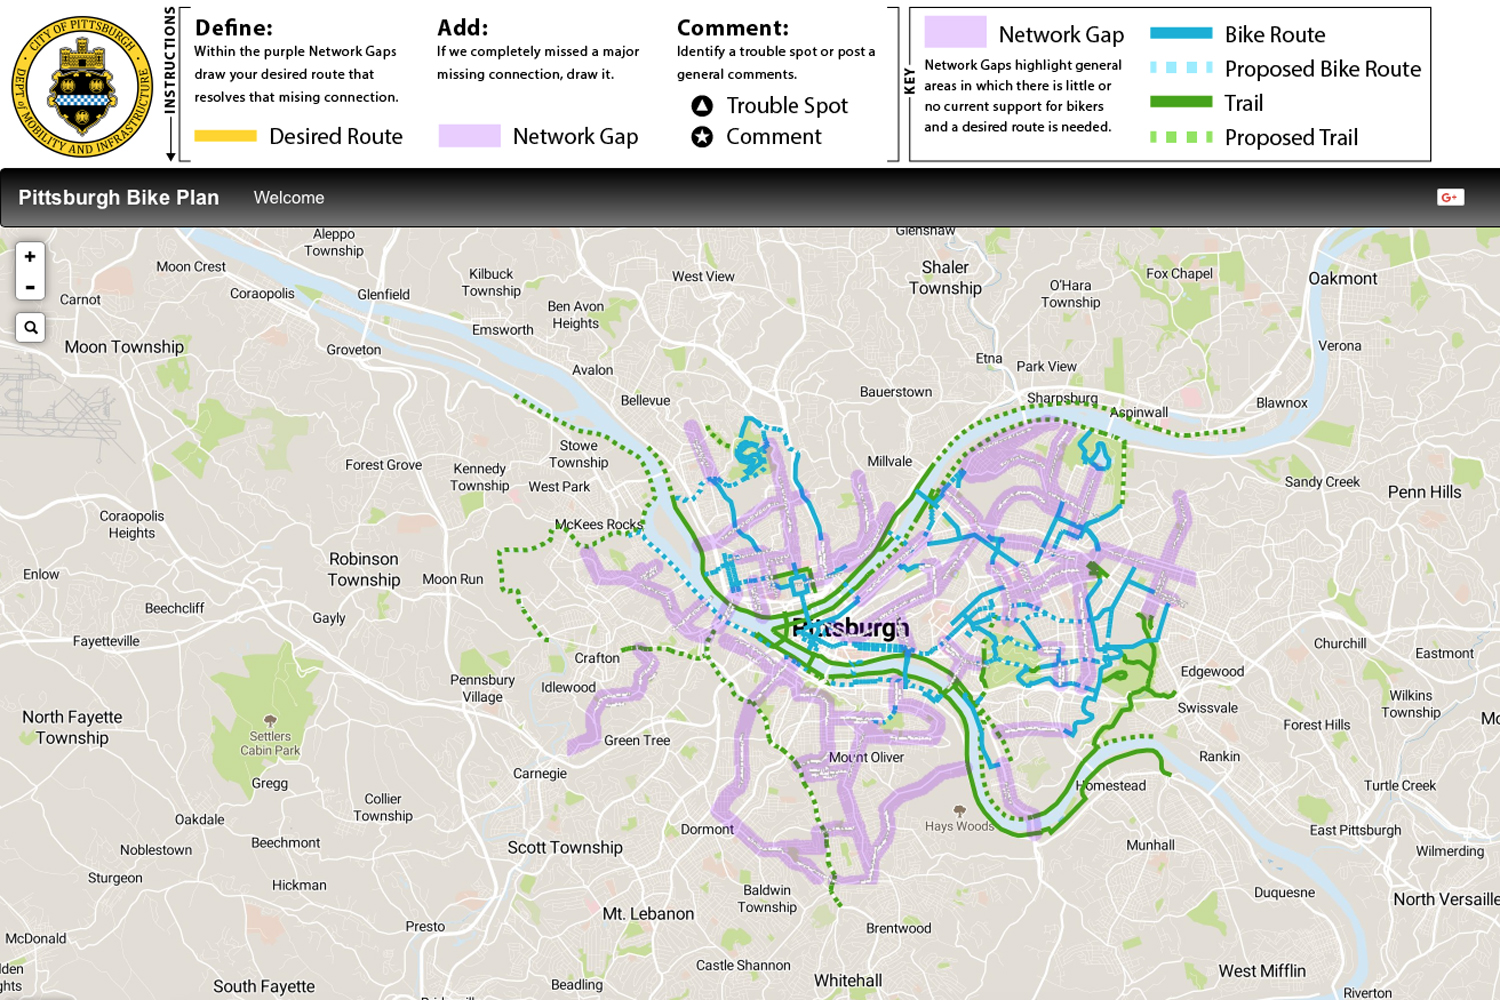 The City of Pittsburgh's Department of Mobility and Infrastructure displays a map with current and proposed bike routes and trails throughout the City.